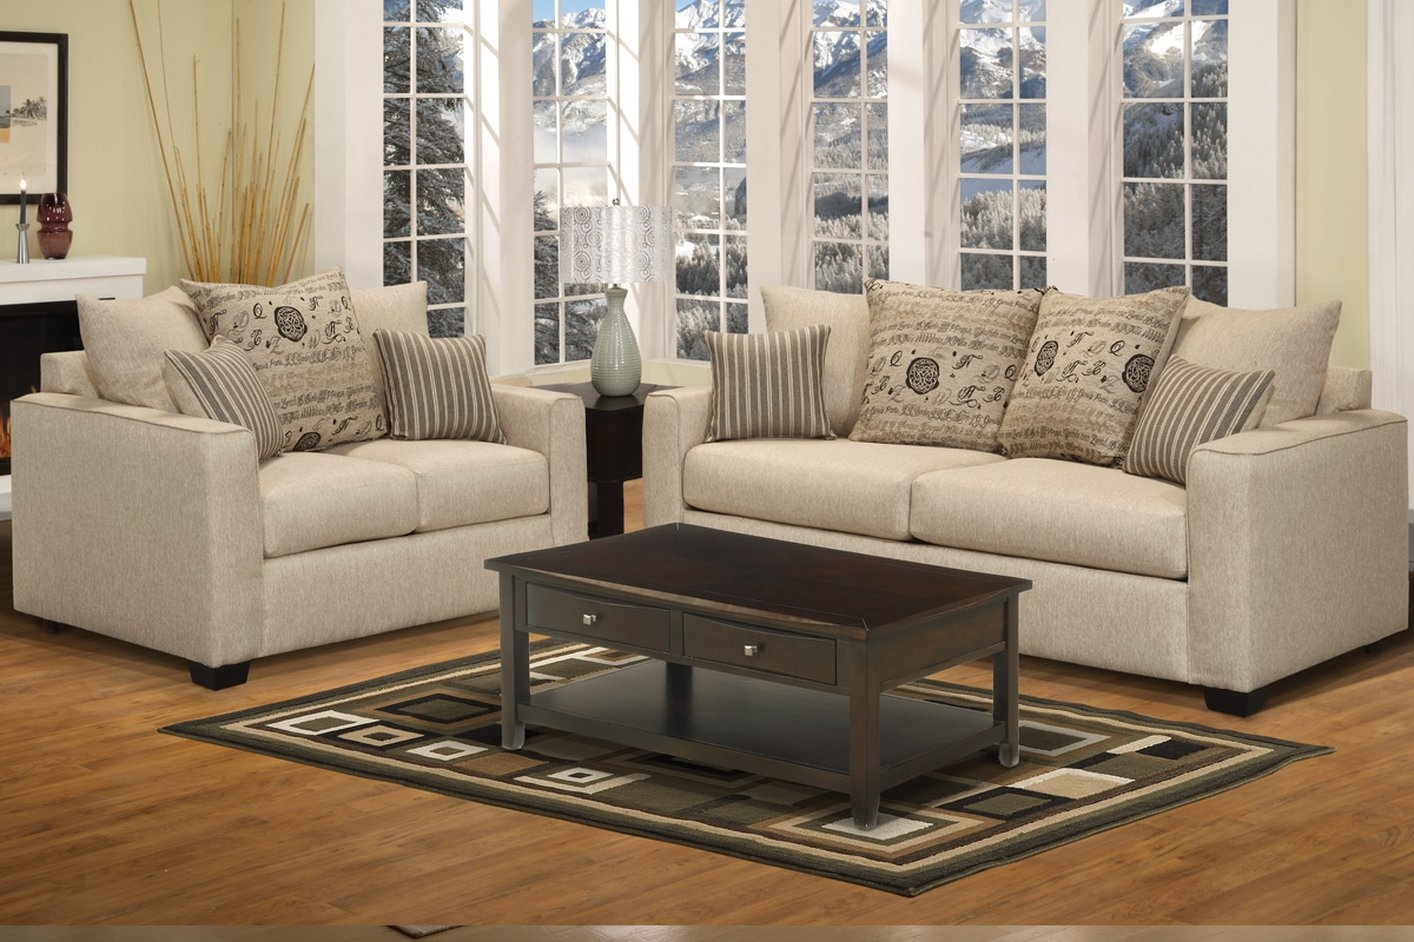 Living Room Interesting Sofa Loveseat Set Sofa Loveseat Chair Set Regarding Sofa Loveseat And Chairs (Image 6 of 15)